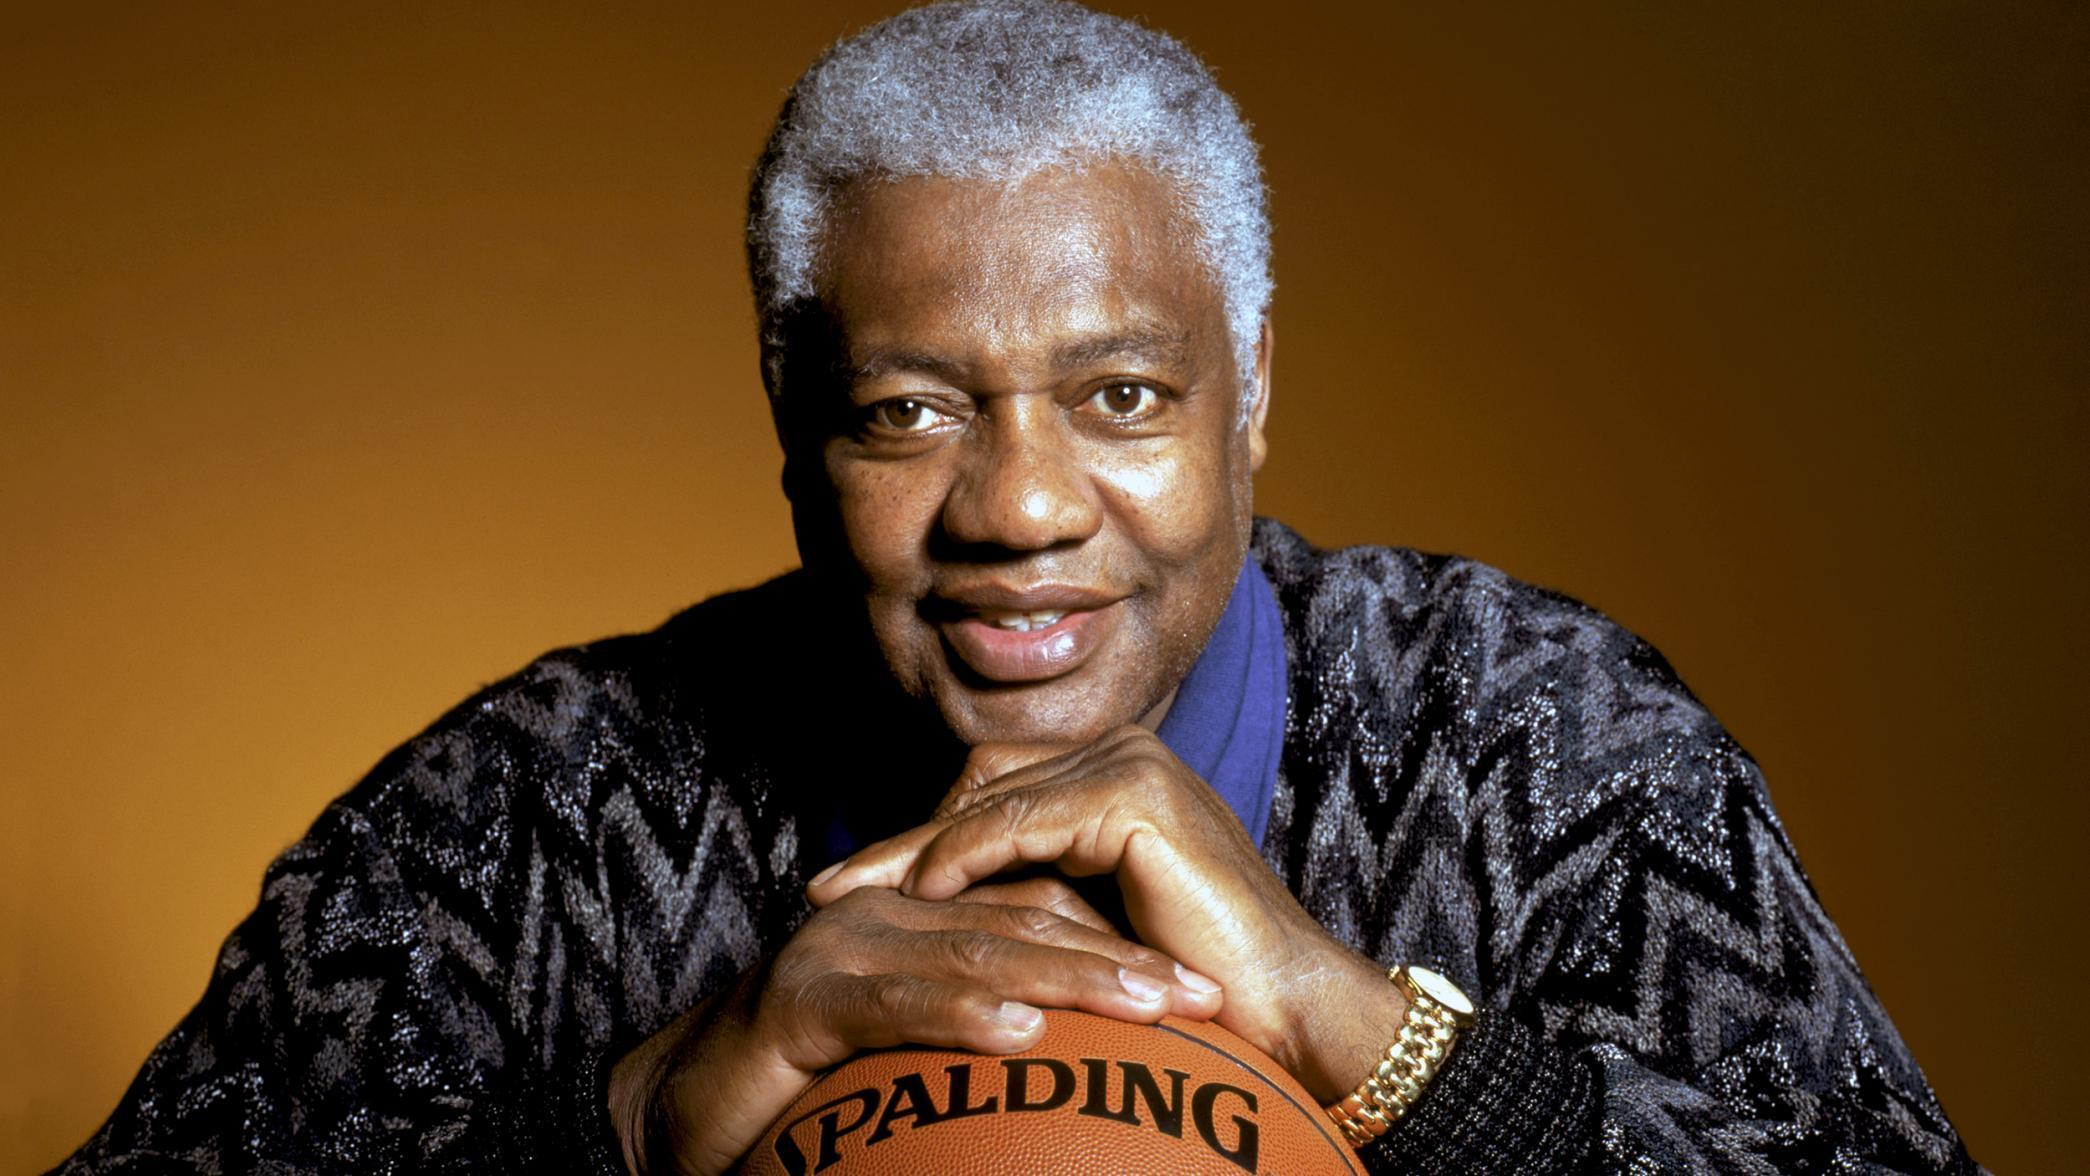 CBLC's 2nd Anniversary Celebration Features Oscar Robertson!